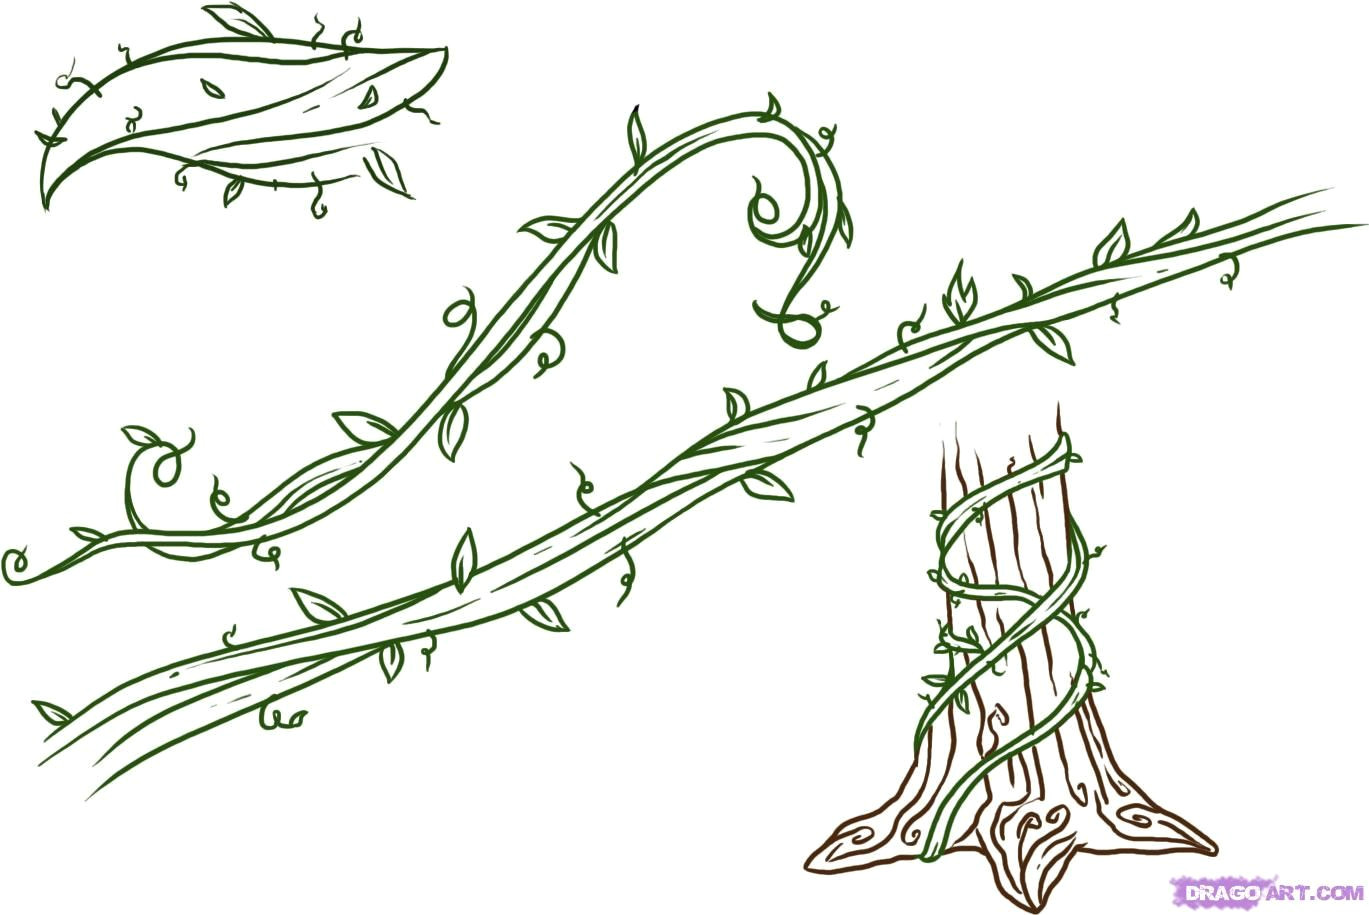 drawings of flowers leaves and vines to draw vines step by step trees pop culture free online drawing